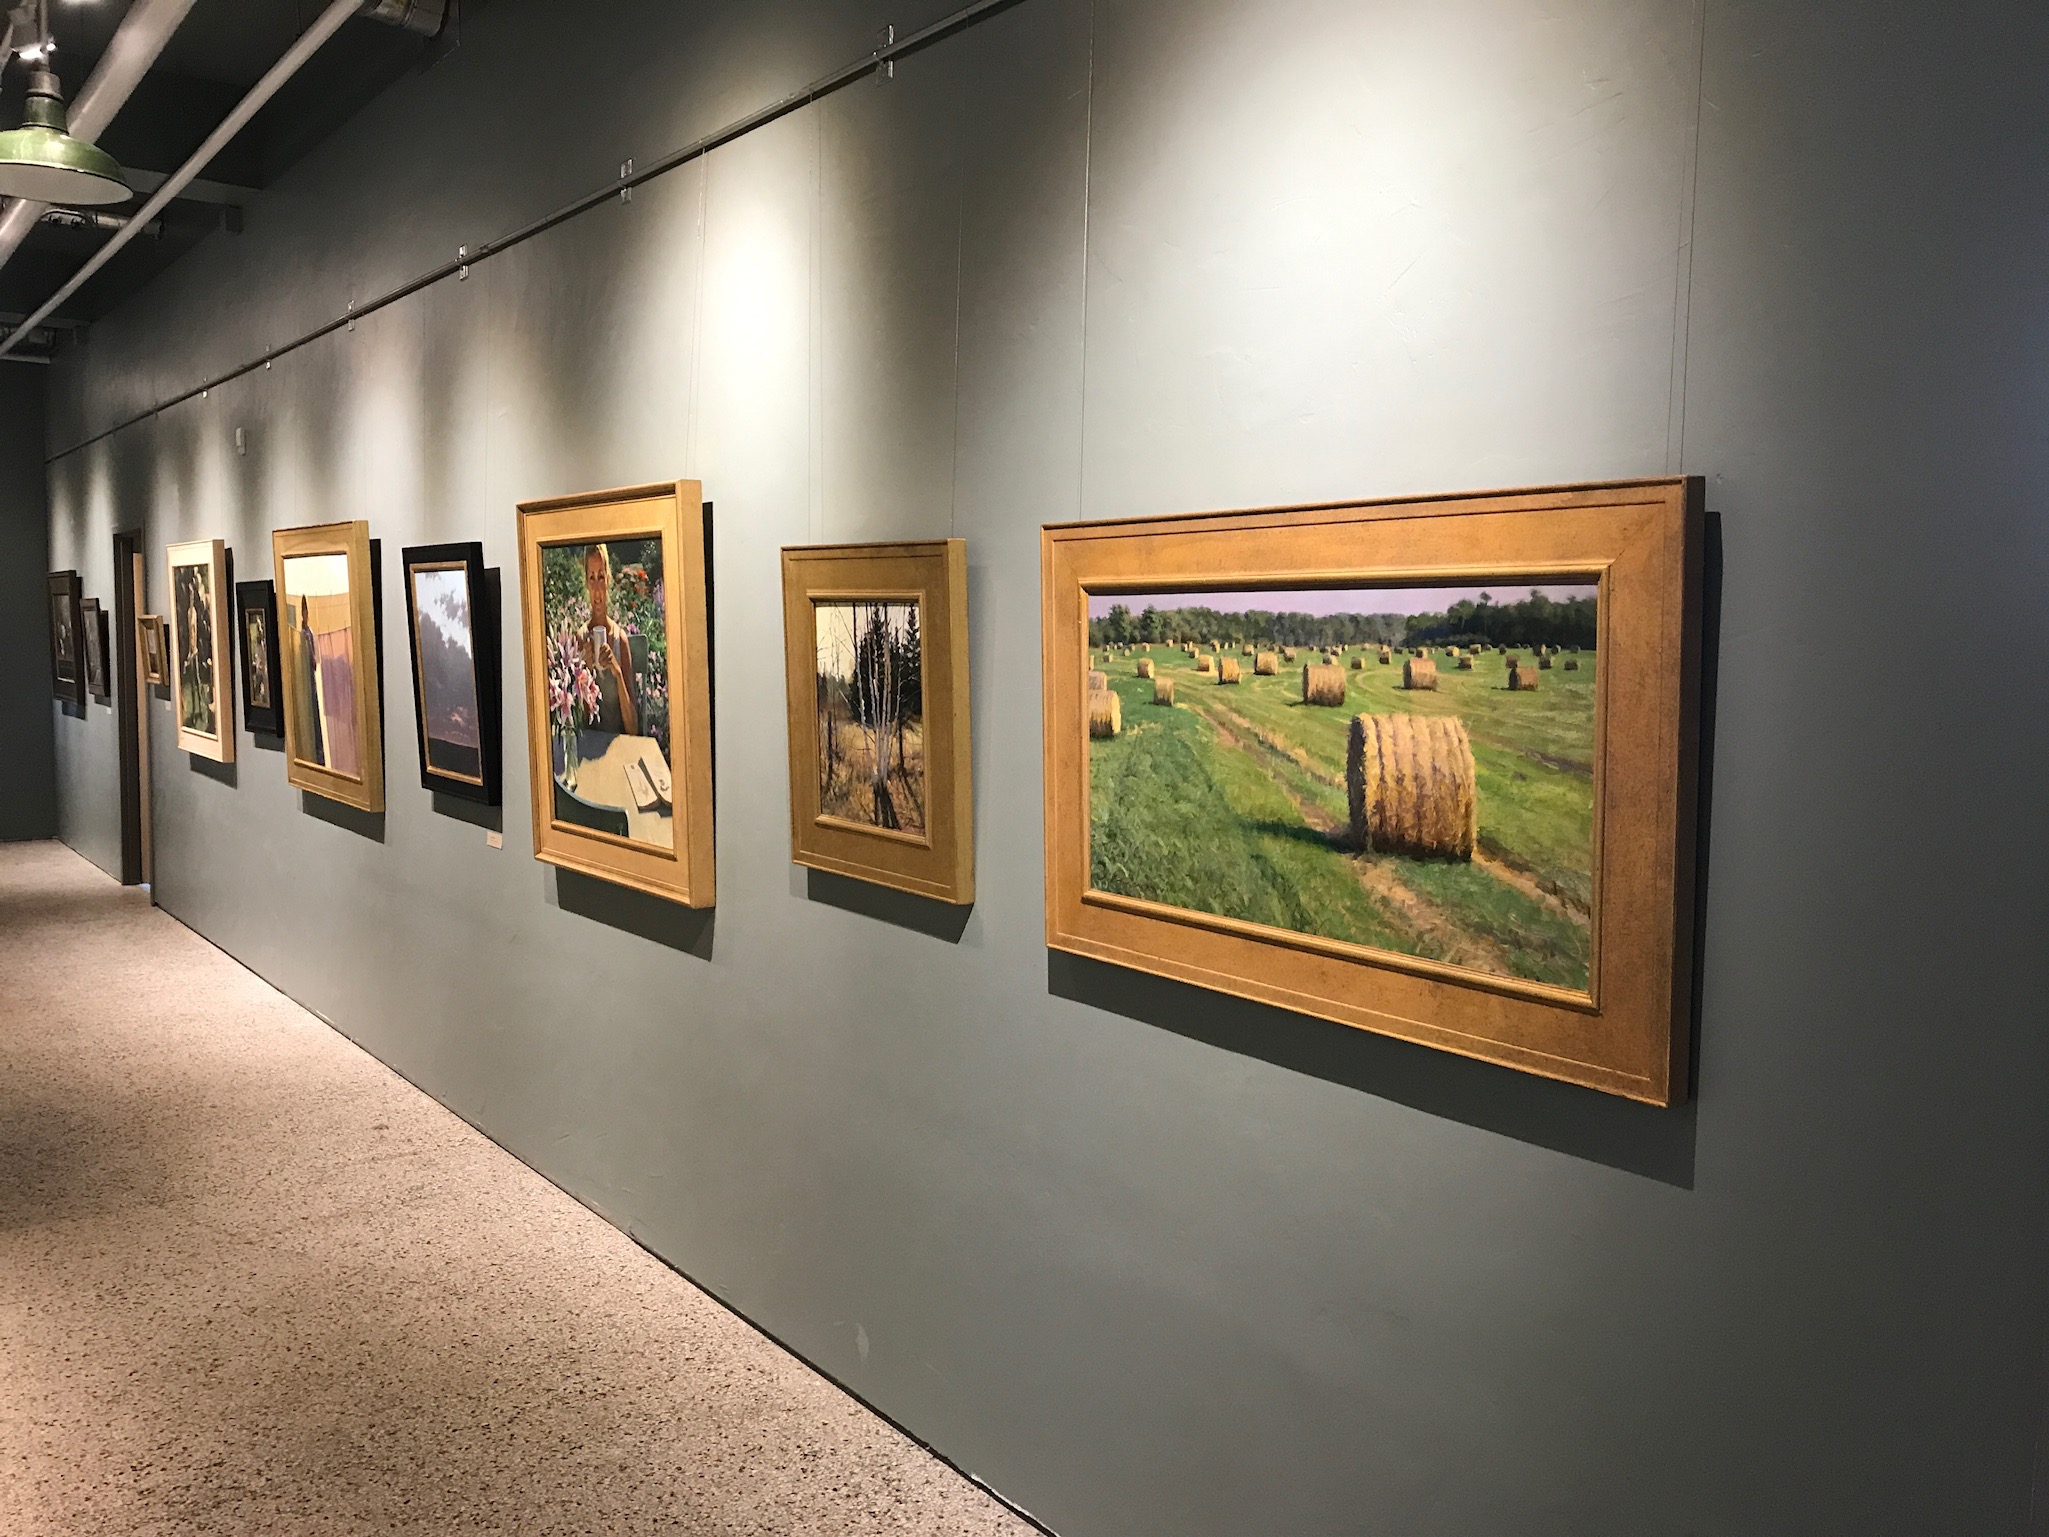 Paintings by Jeff and Brock Larson Featured at Great Lakes Academy of Fine Art's First Annual Open House.